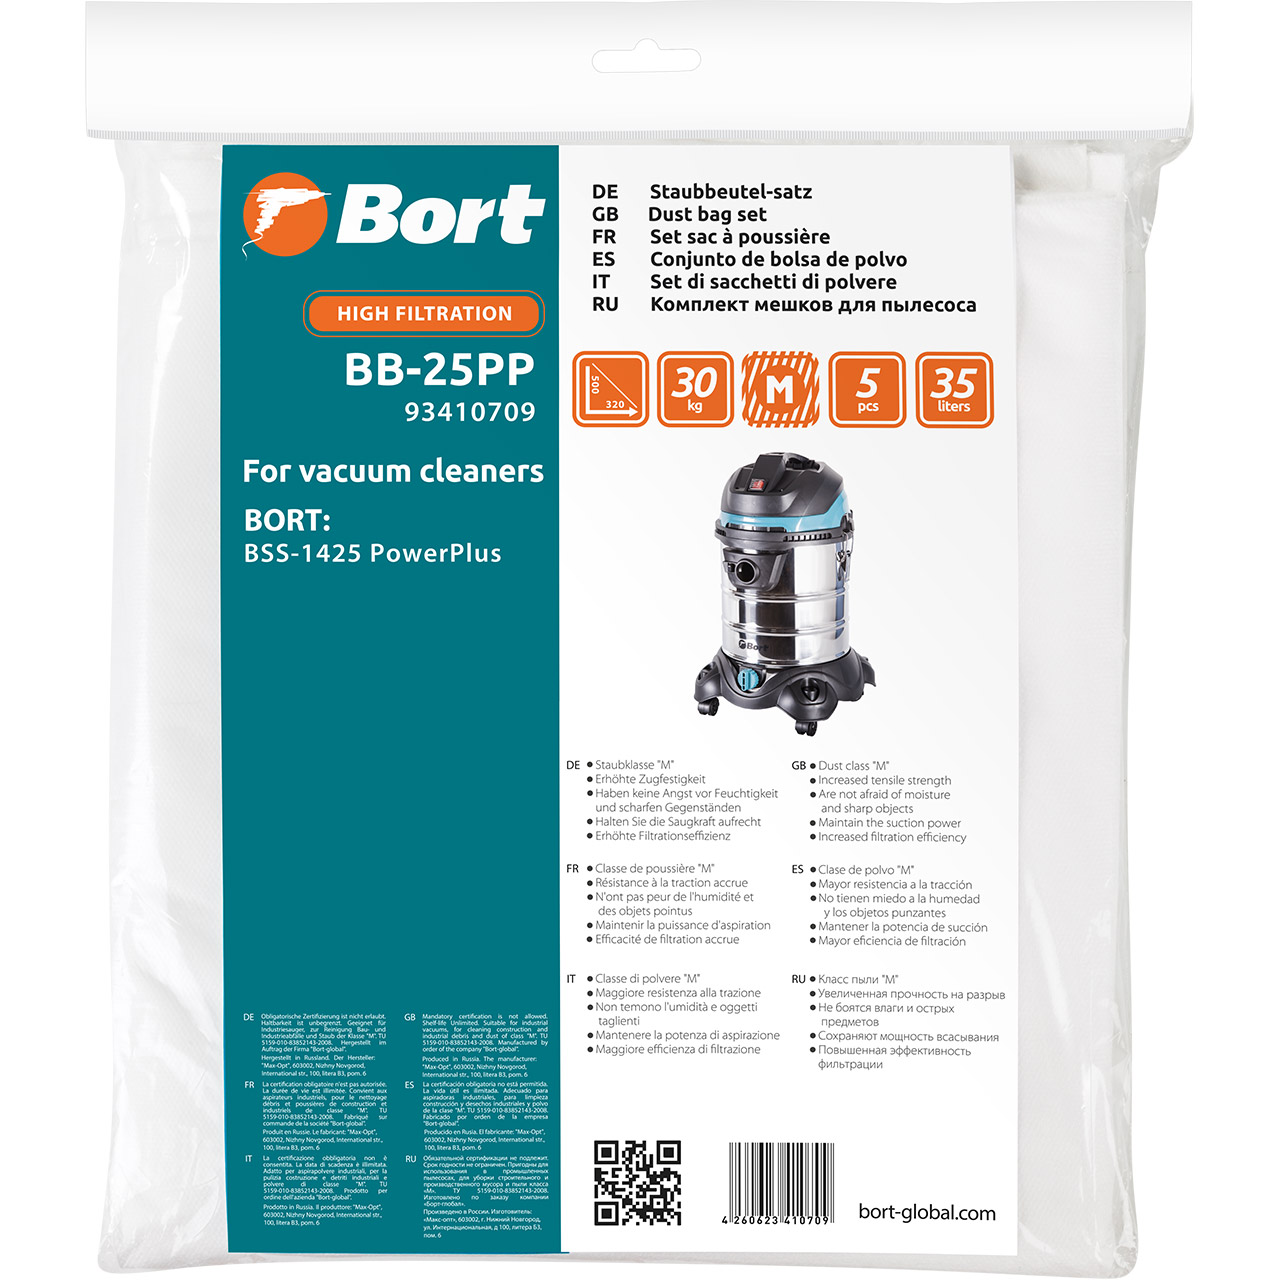 Set of dust bags for vacuum cleaner BB-25PP